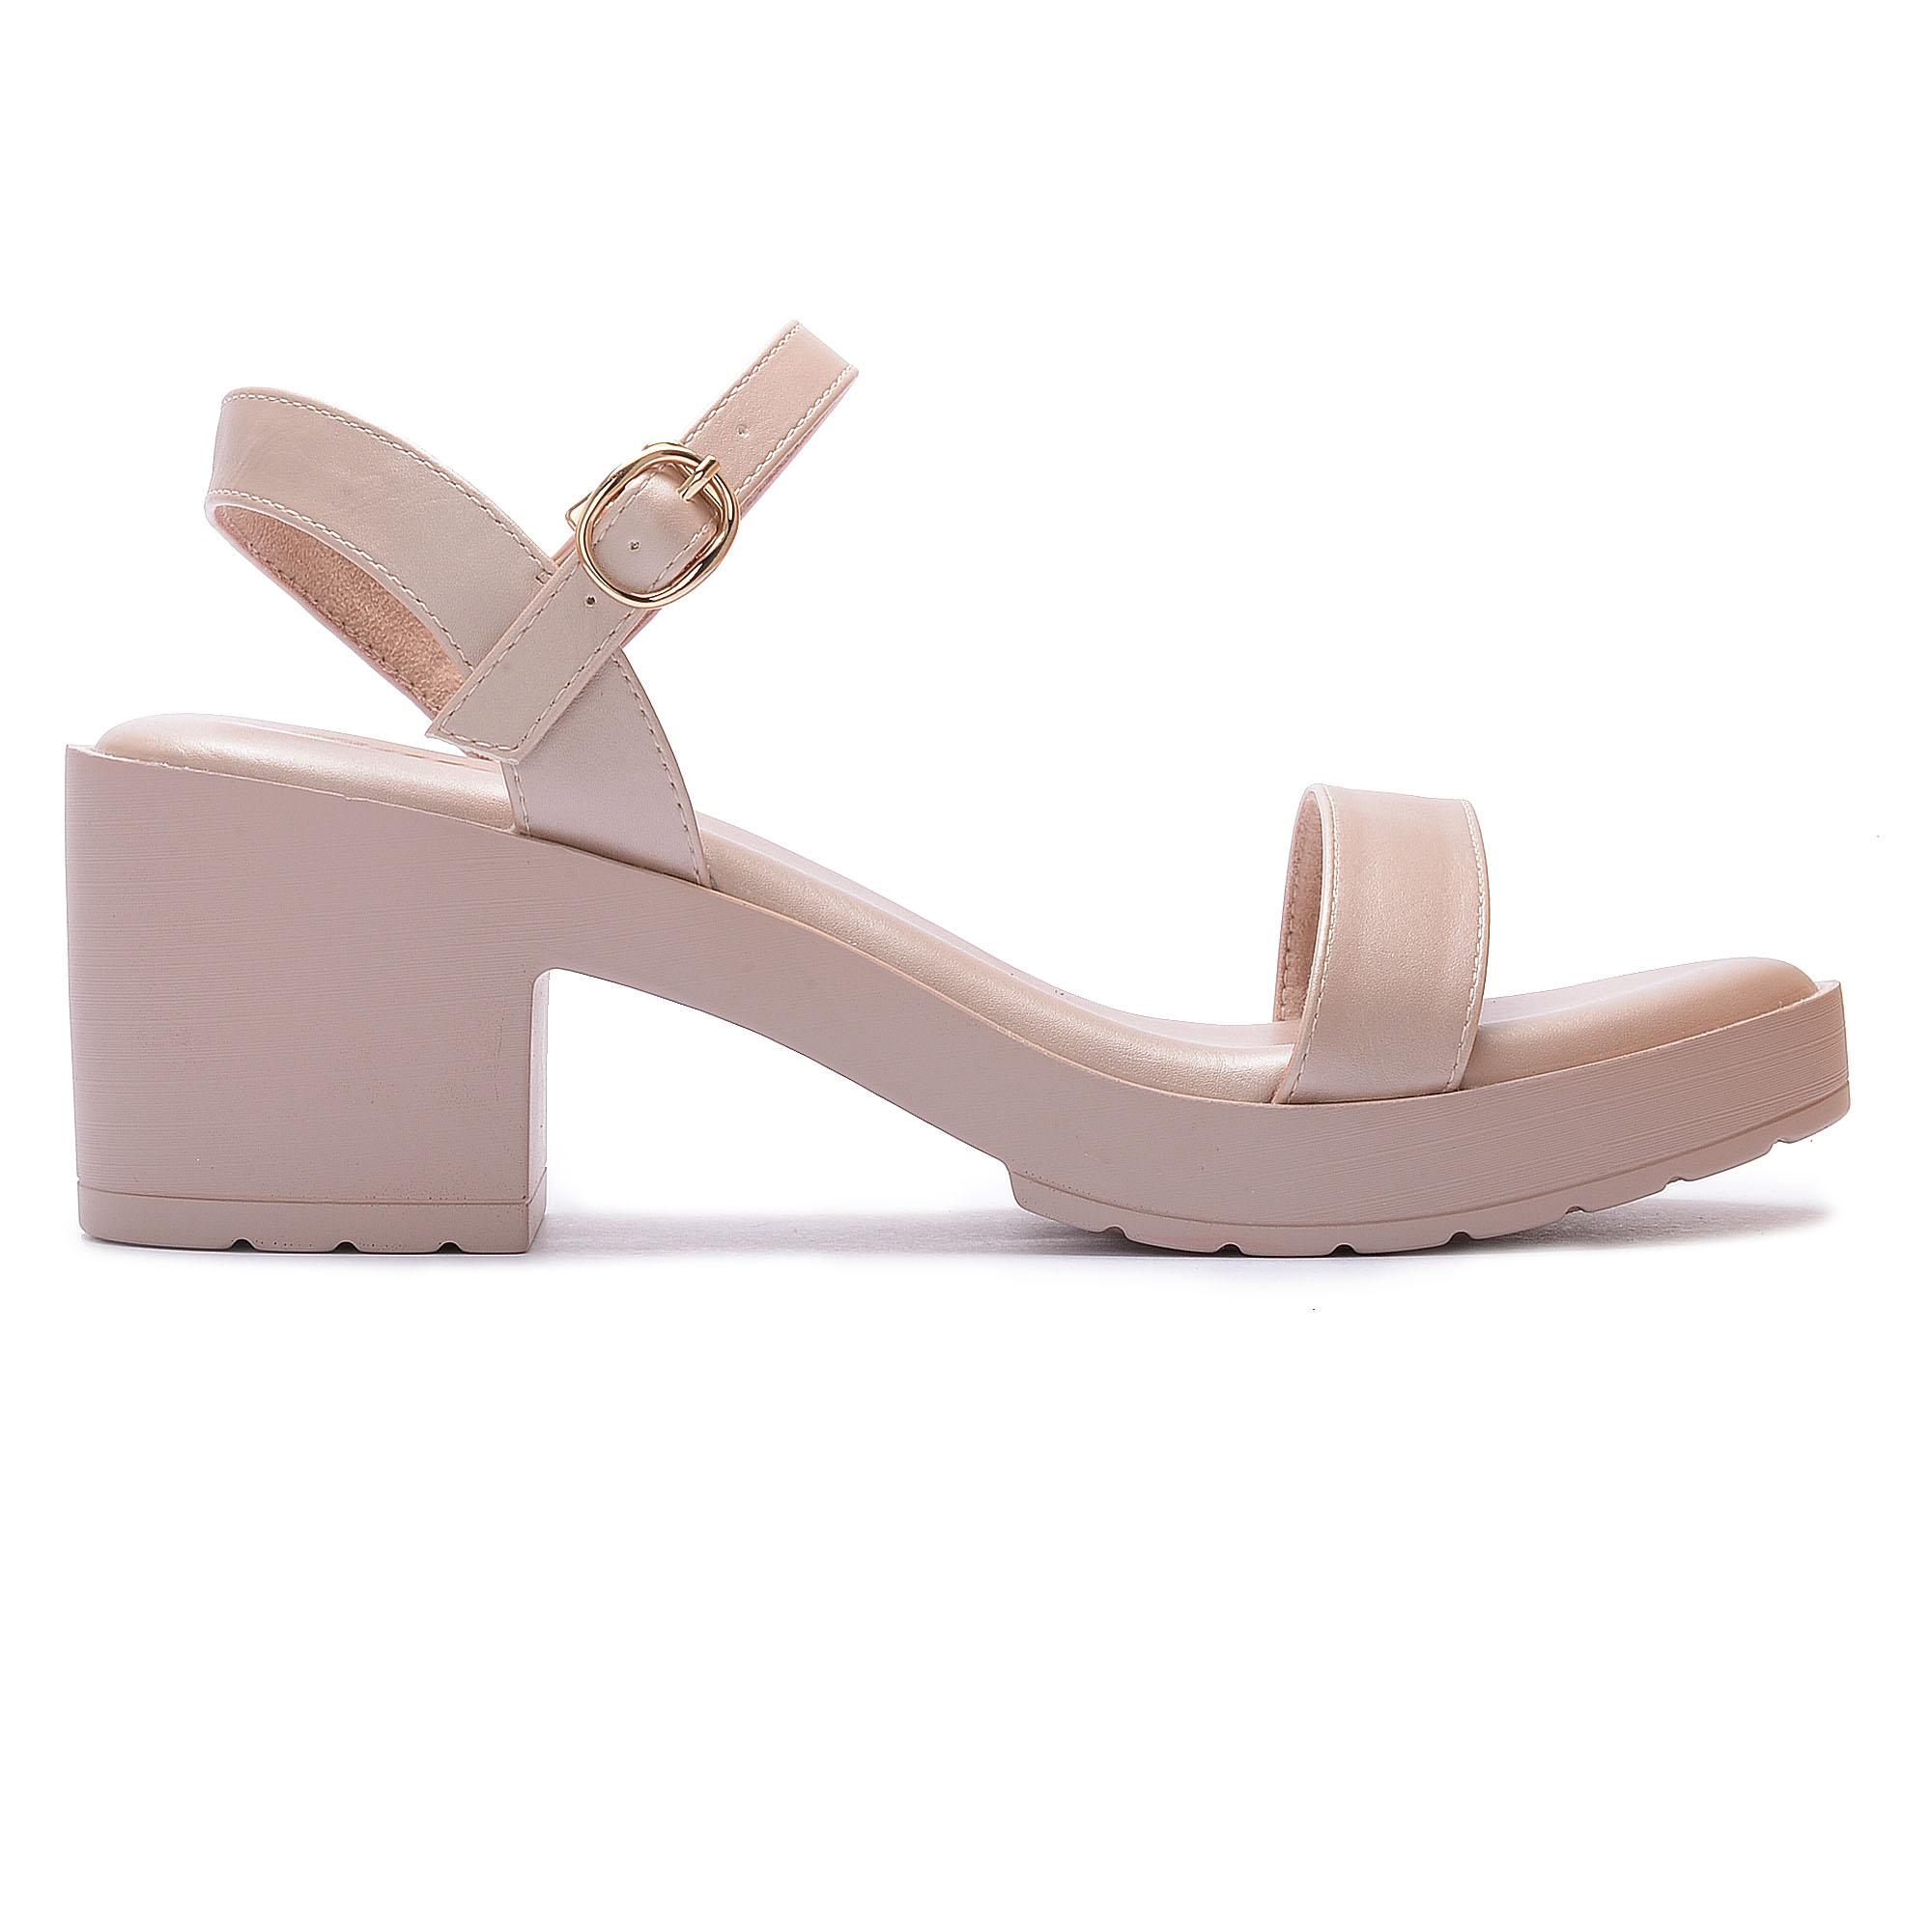 a9763518bd Buy Top Heeled Sandals   Women Shoes   Lazada.sg